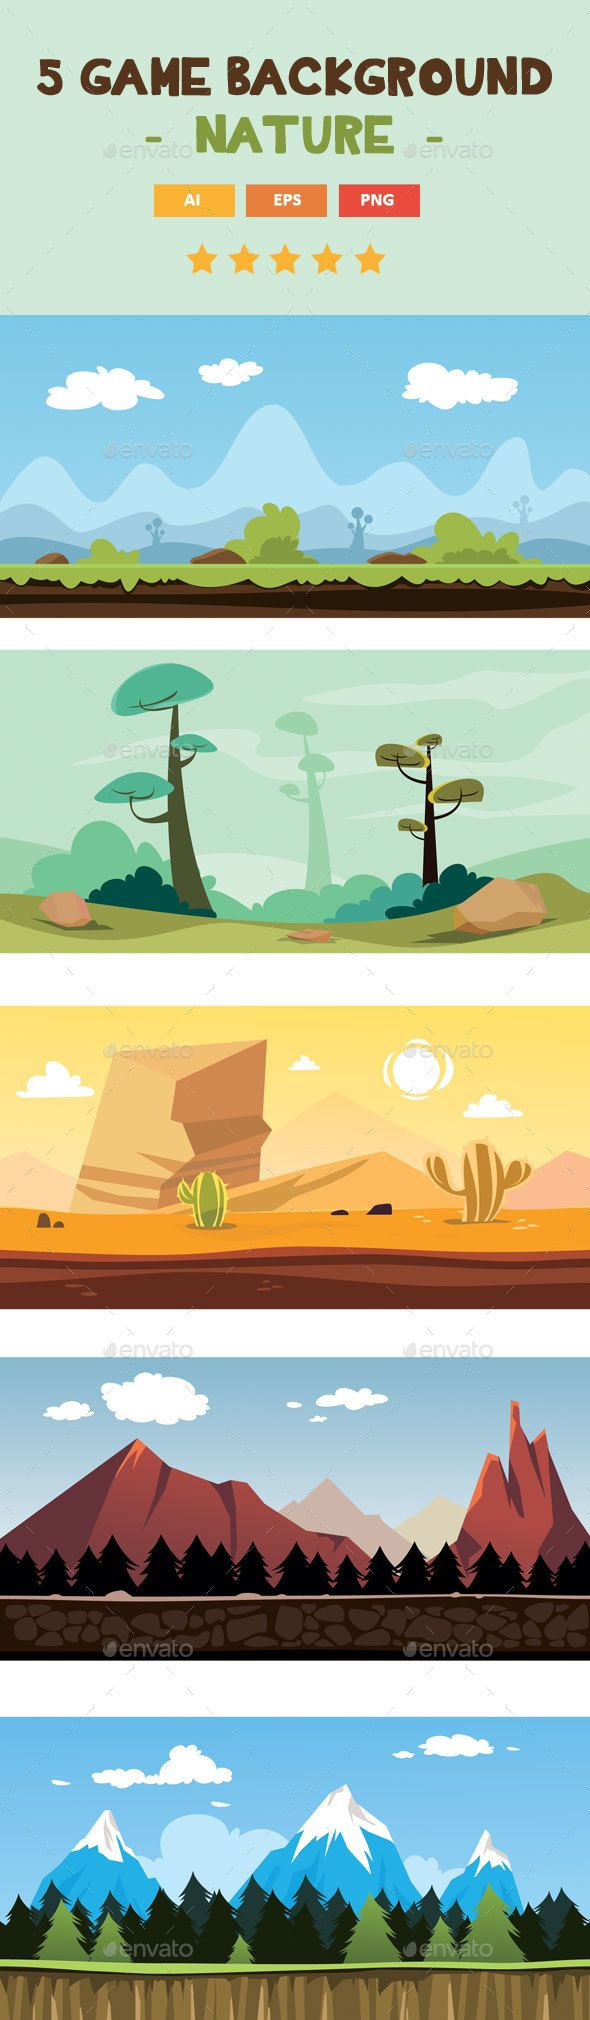 5 Nature Game Background Download here: https://graphicriver.net/item/5-nature-game-background/16435472?ref=KlitVogli